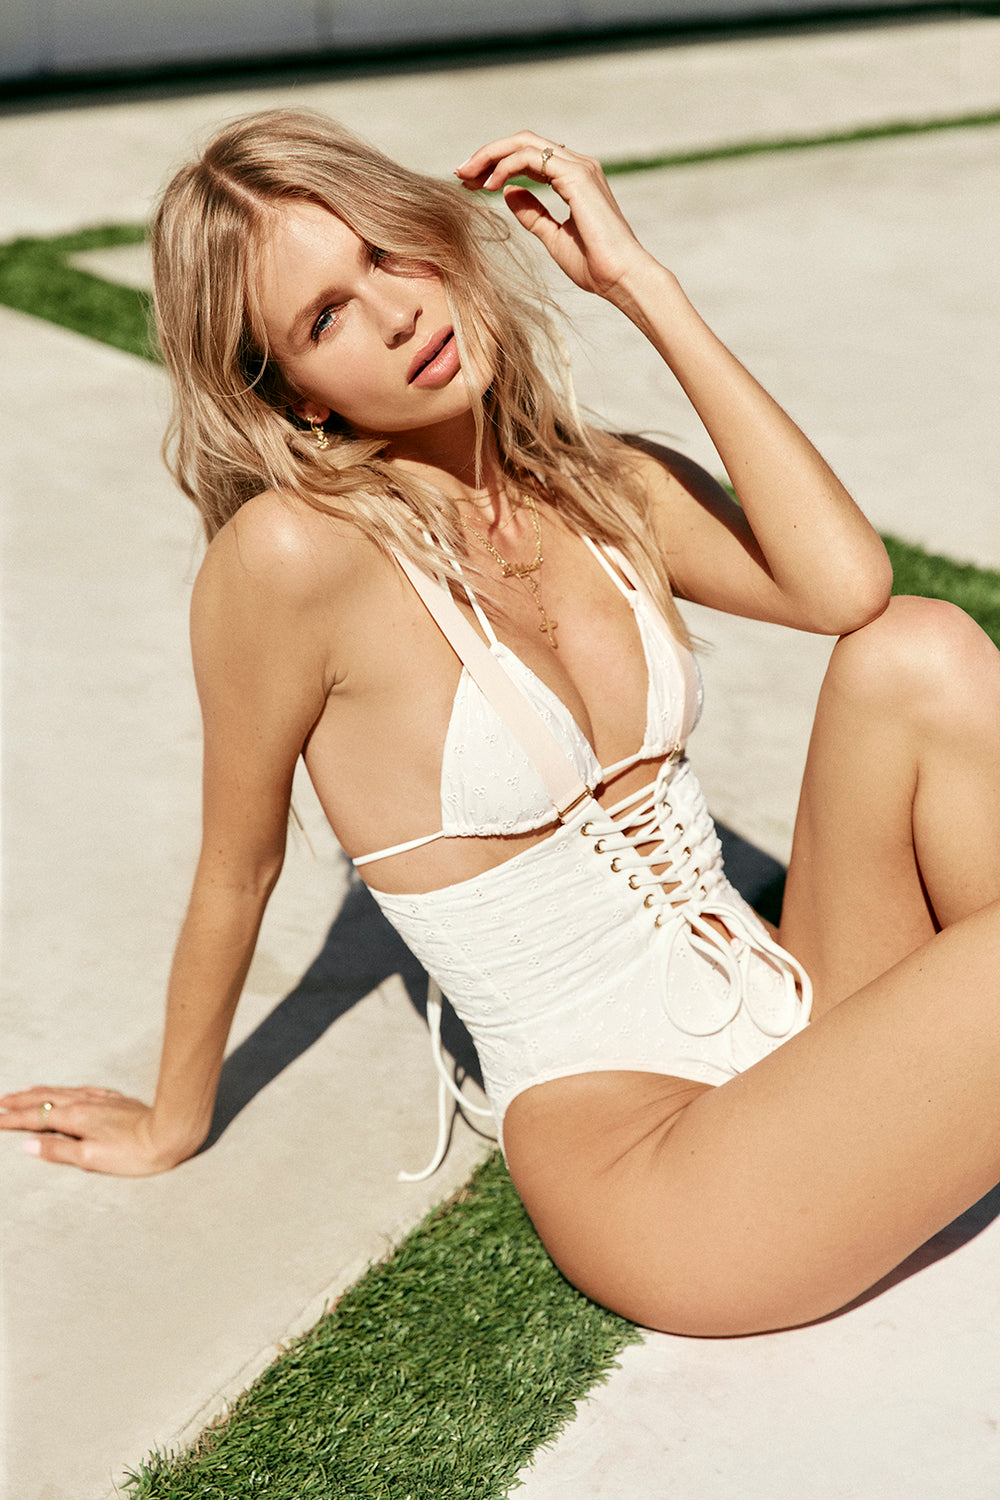 white eyelet vintage inspired bikini top minimal coverage eco-friendly & sustainable fabric